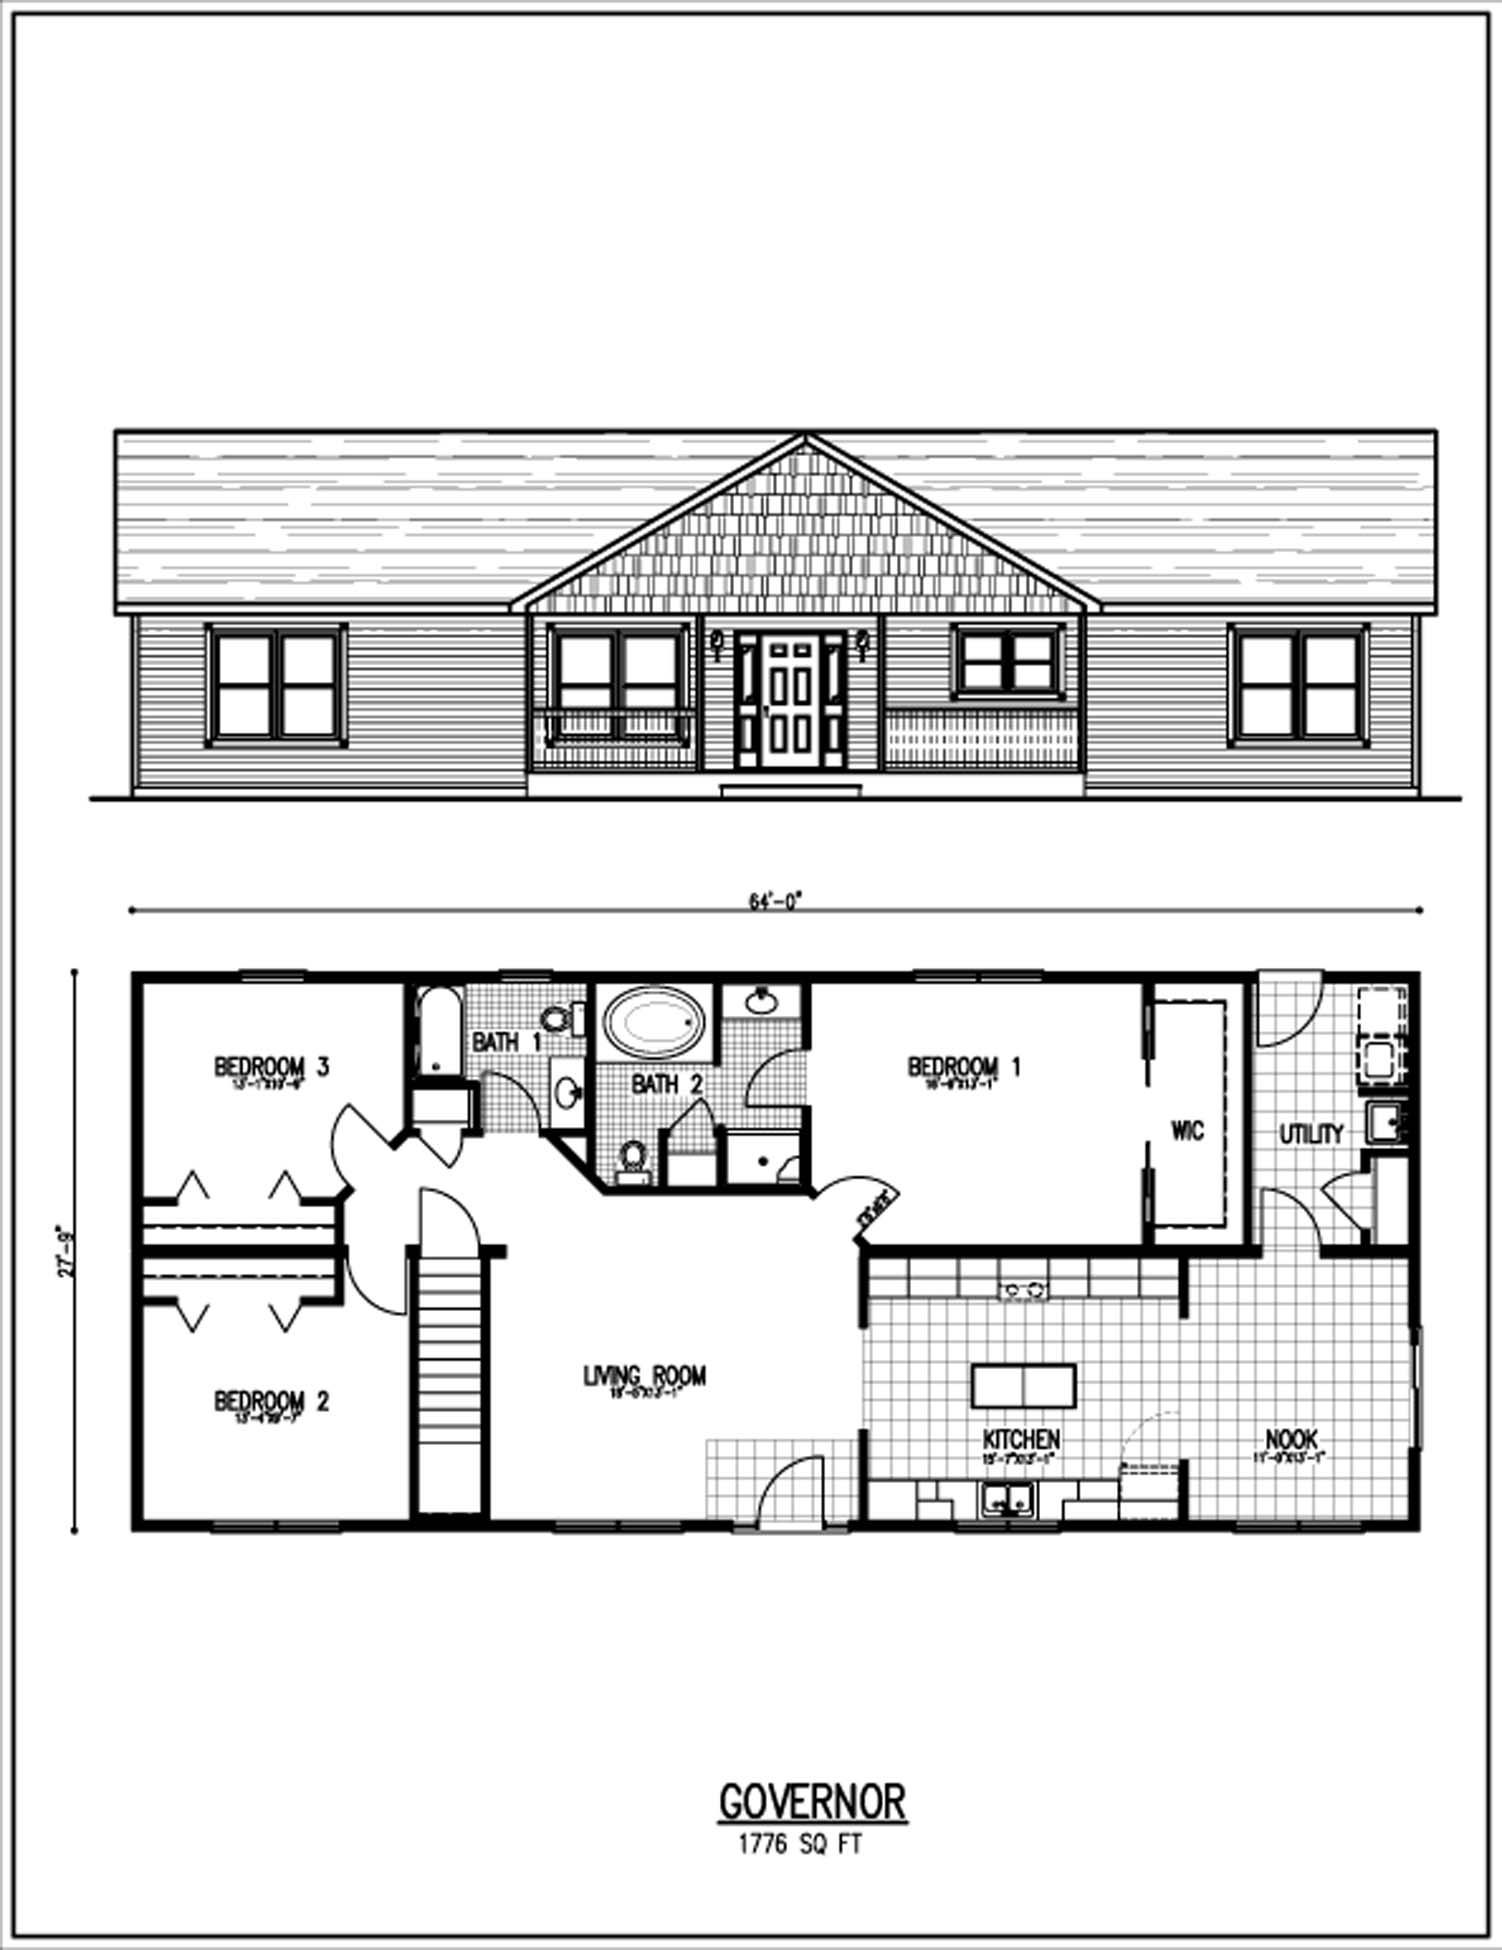 Floor plans by shawam082498 on pinterest floor plans for One level ranch home floor plans